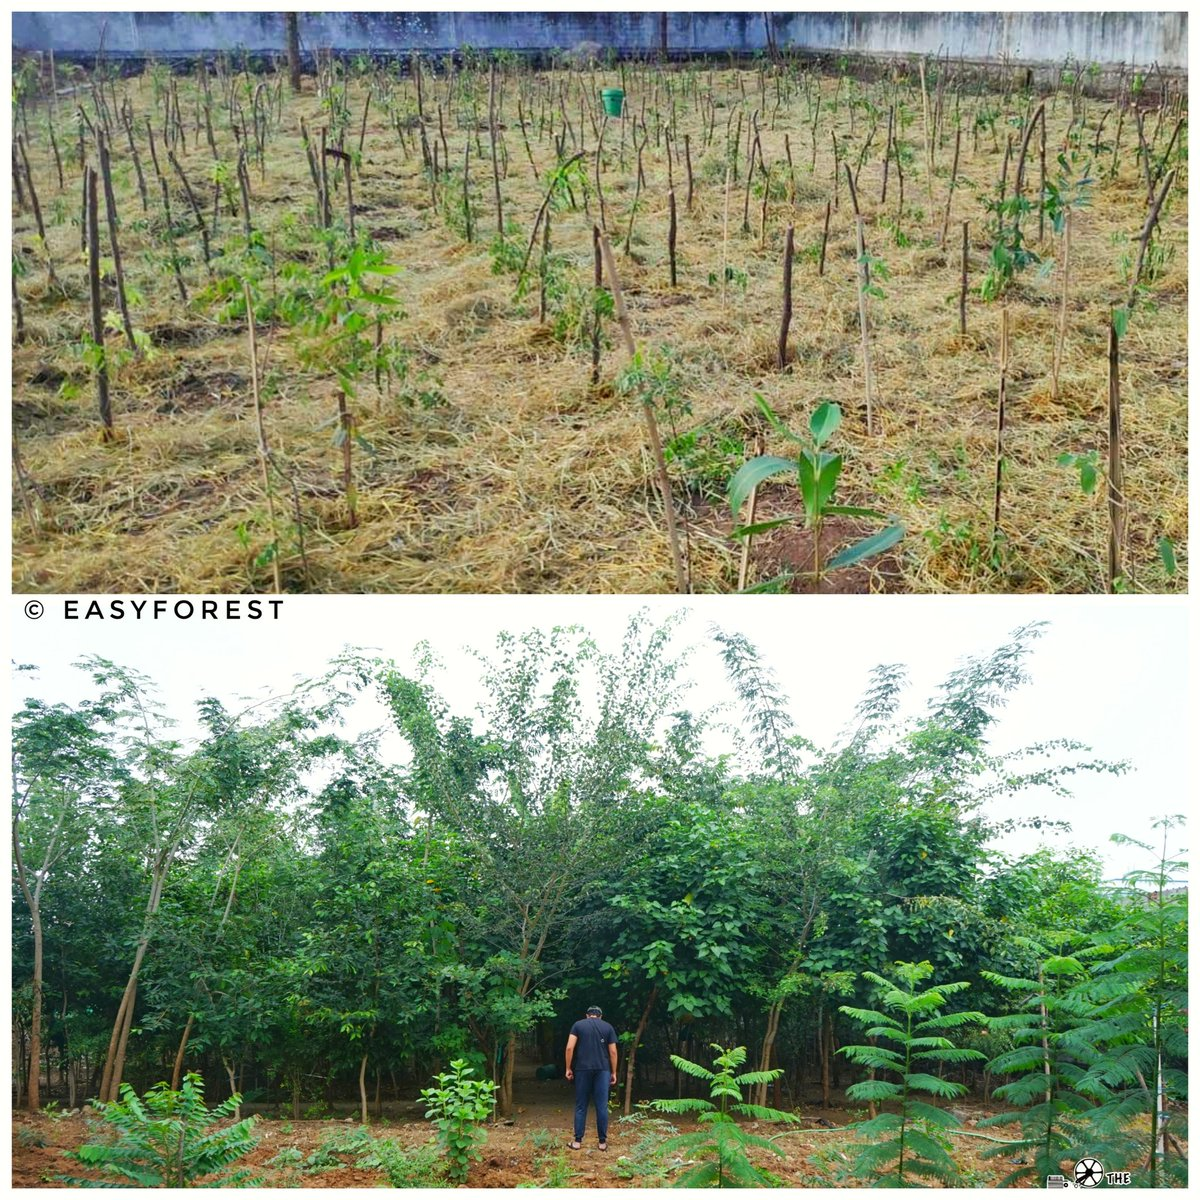 @ashwinravi99 @Hanumavihari  You guys never gave up. Faced 259 balls in total.  We at EasyForest, will plant an urban dense forest (similar to attached pic) in near future with 259 trees to remember the big day. #SCGTest  Hats off #TeamIndia🇮🇳 @BCCI  For the legend #RahulDravid